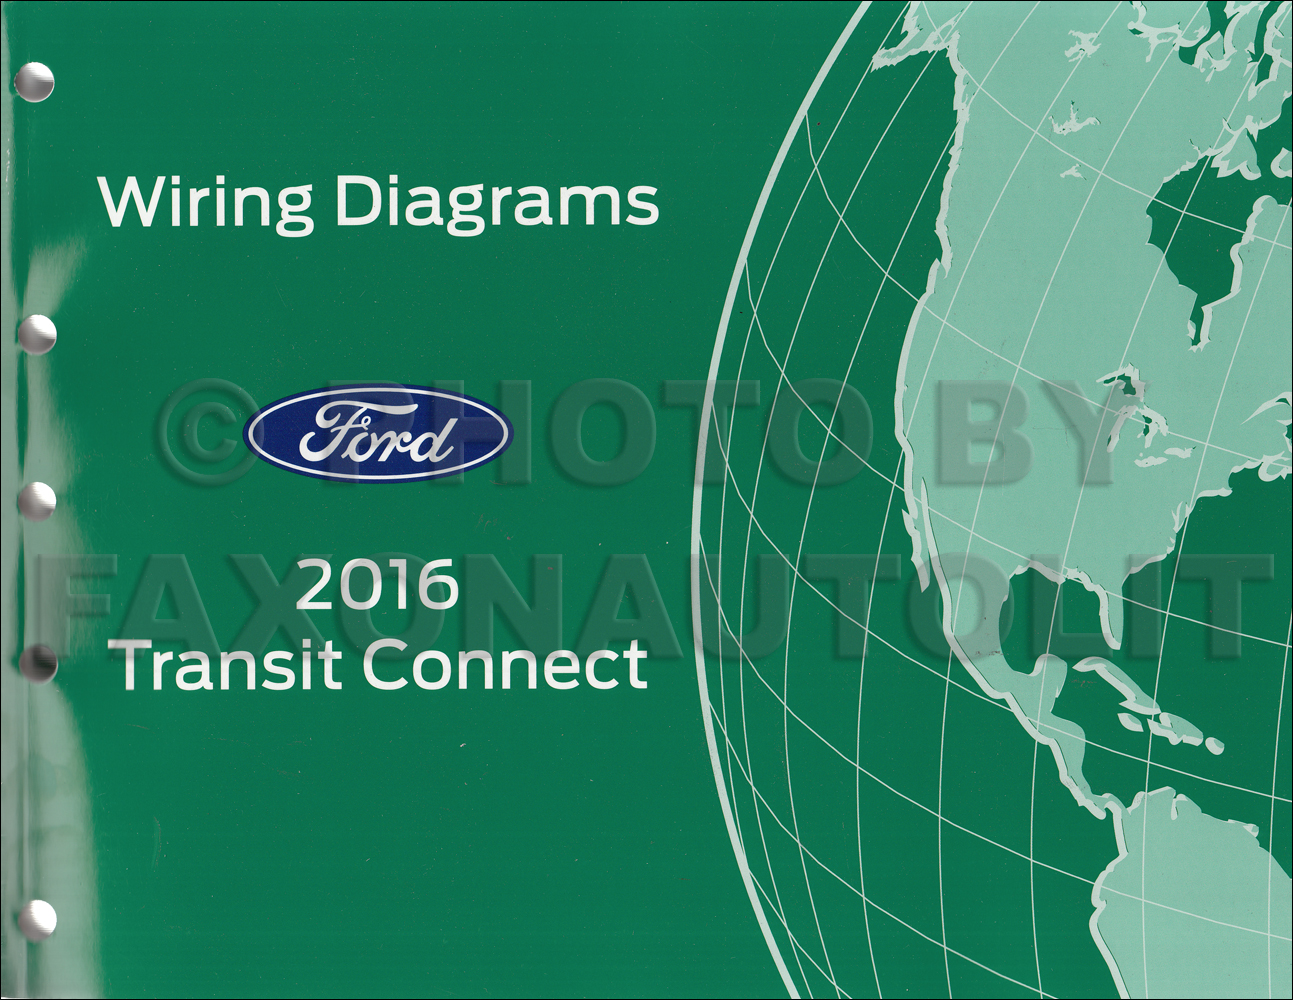 Ford Transit Wiring Loom Diagram | Wiring Diagram on ford truck wiring diagrams, ford 5.4l 3v engine, ford coil harness, ford f550 engine, ford 5.0 fuel injection harness, ford engine filter, ford f550 wiring-diagram, ford ranger 2.9 wiring-diagram, ford engine sensors, ford engine diagram, ford fuel fitting, ford air bag module, ford electrical wiring diagrams, ford galaxie engine, ford wiring harnesses, ford ecm, ford focus wiring diagram, ford computer harness, ford f150 wiring diagram, ford 6.0 engine harness,